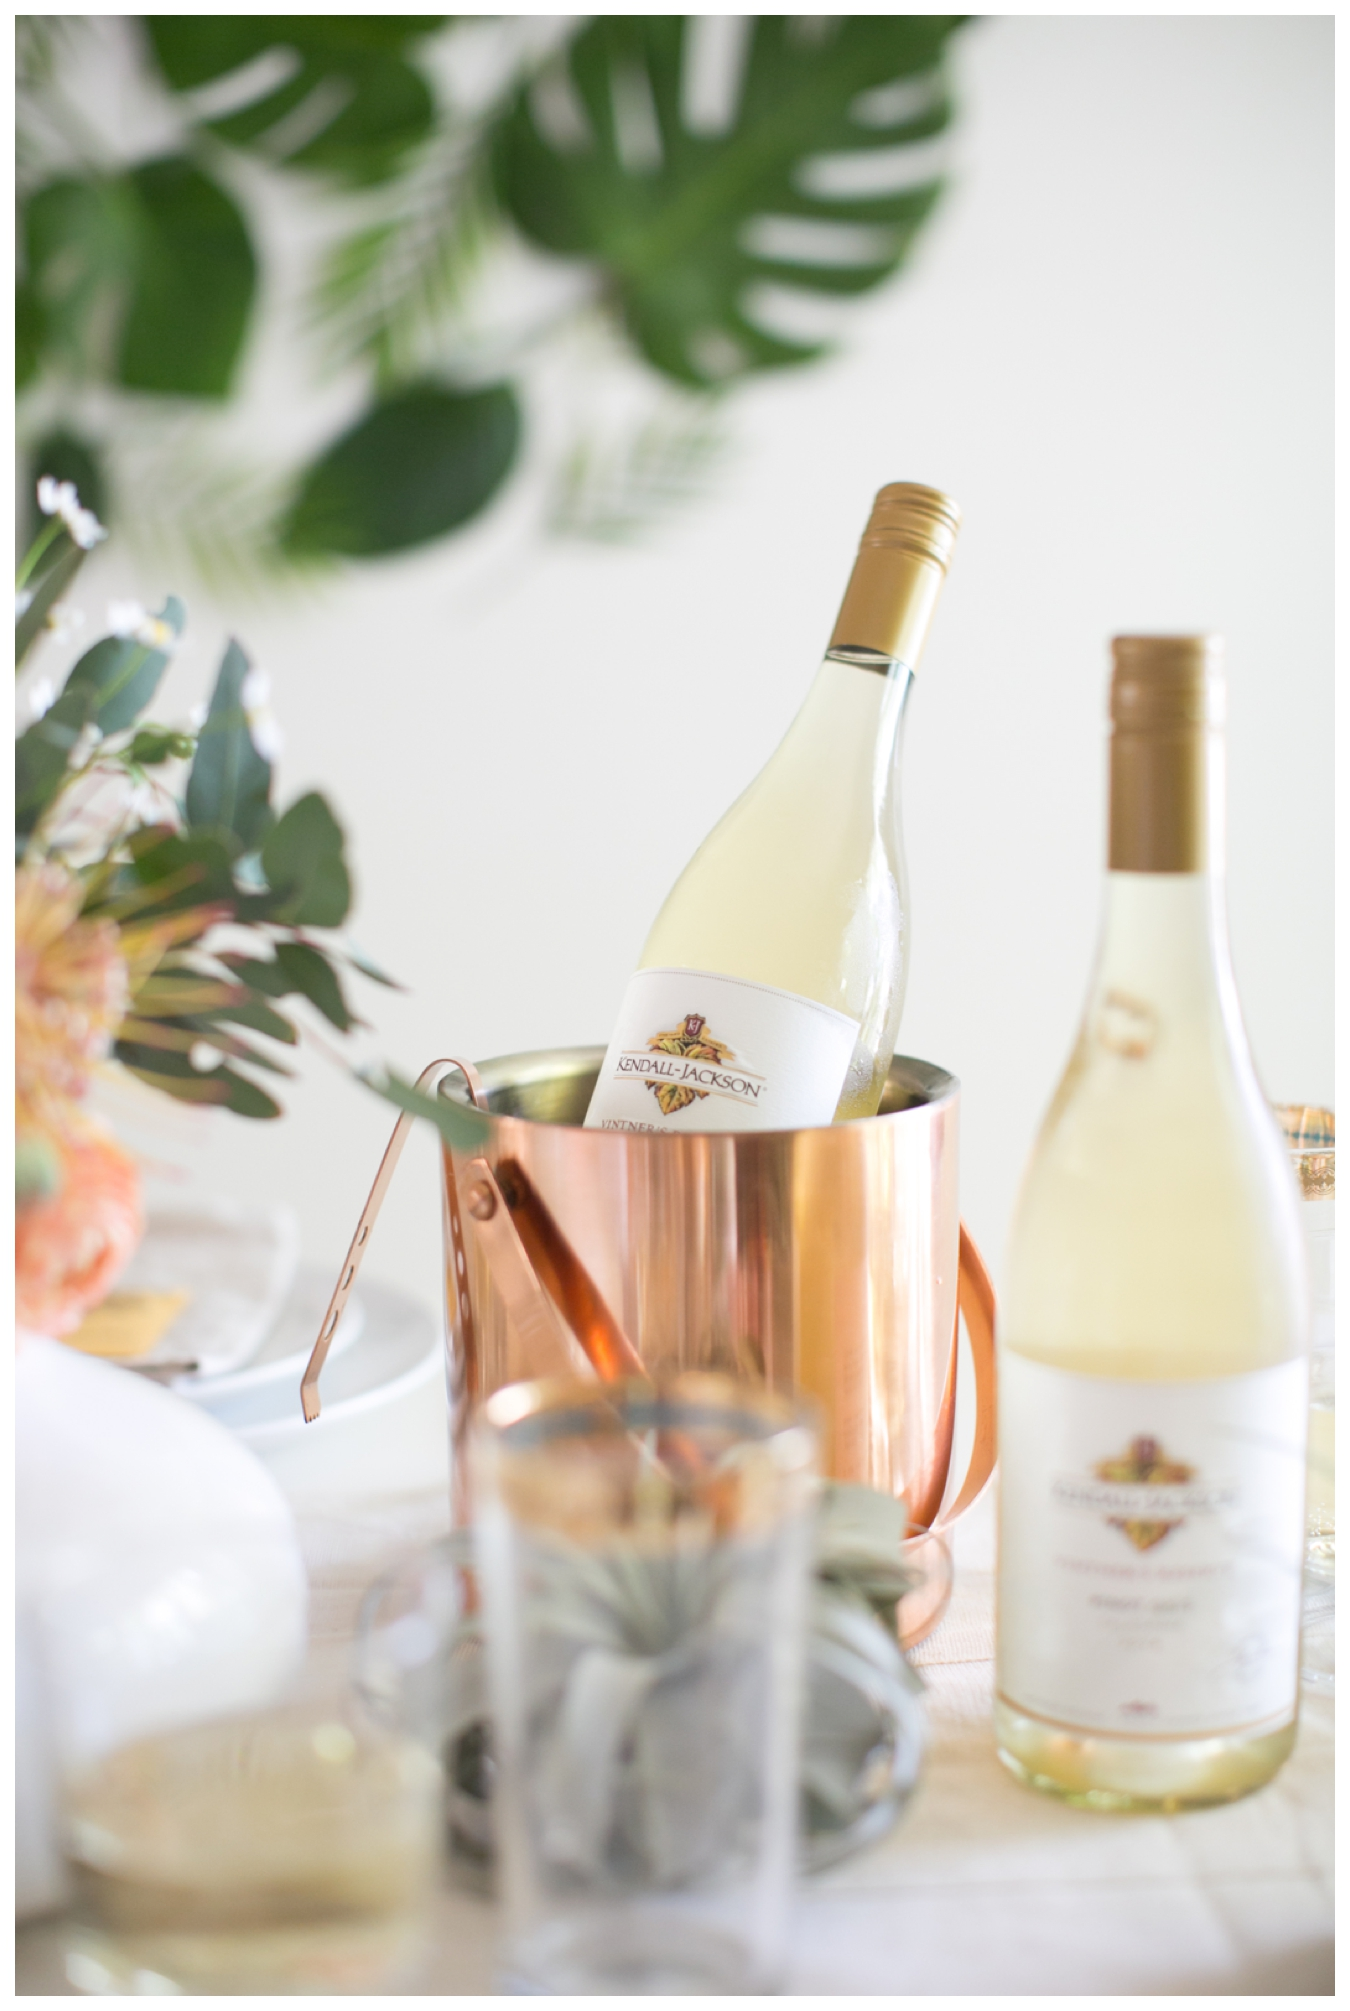 lily glass for almost makes perfect | spring winesicles